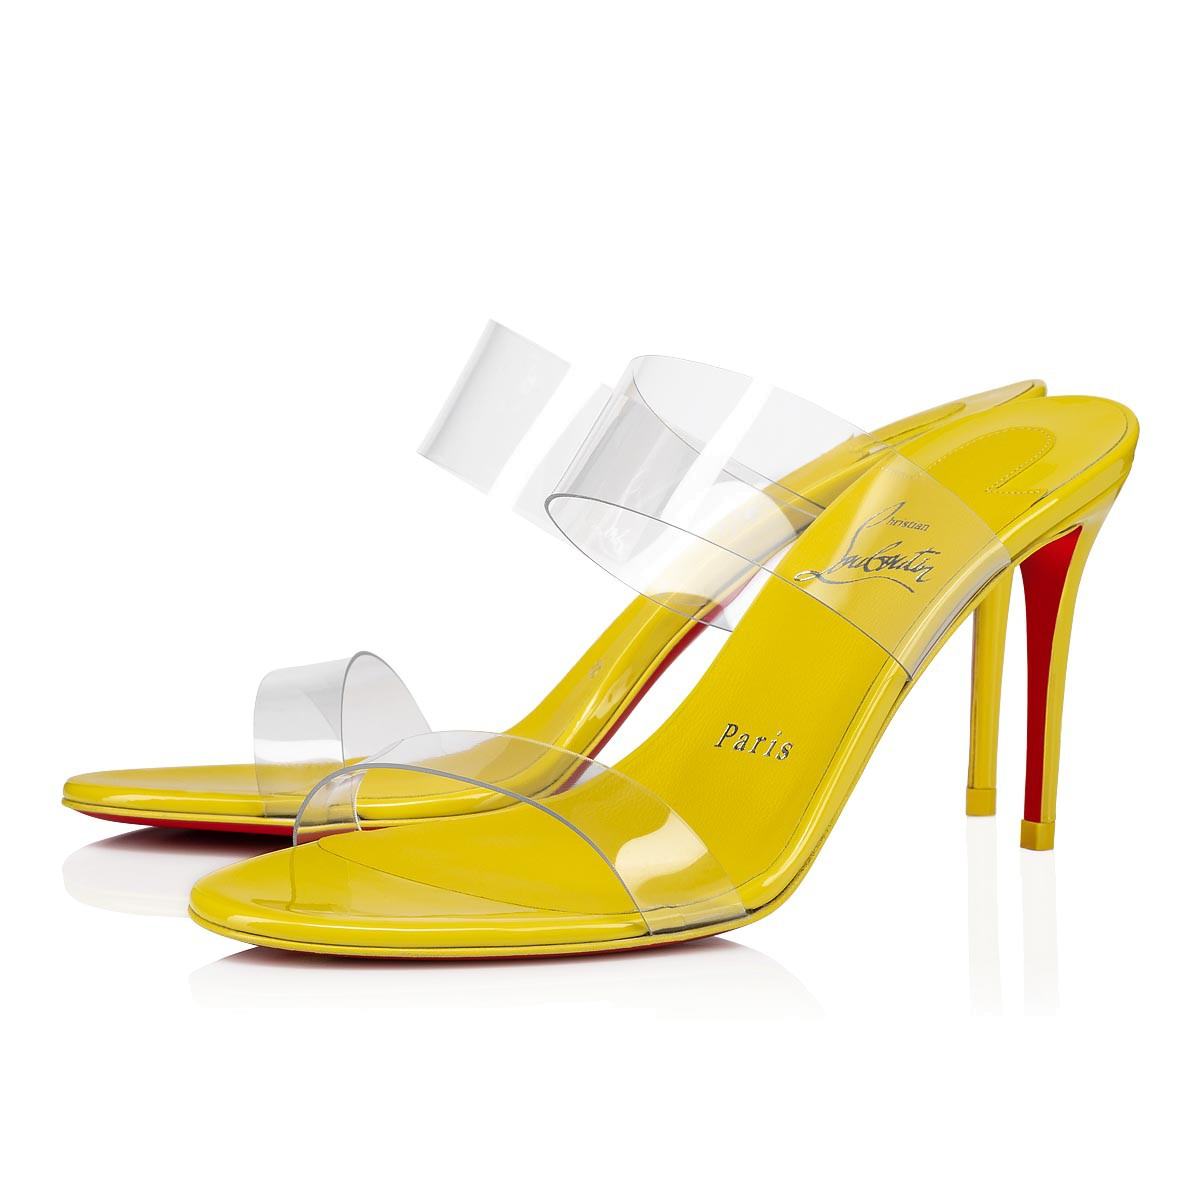 Shoes - Just Nothing - Christian Louboutin